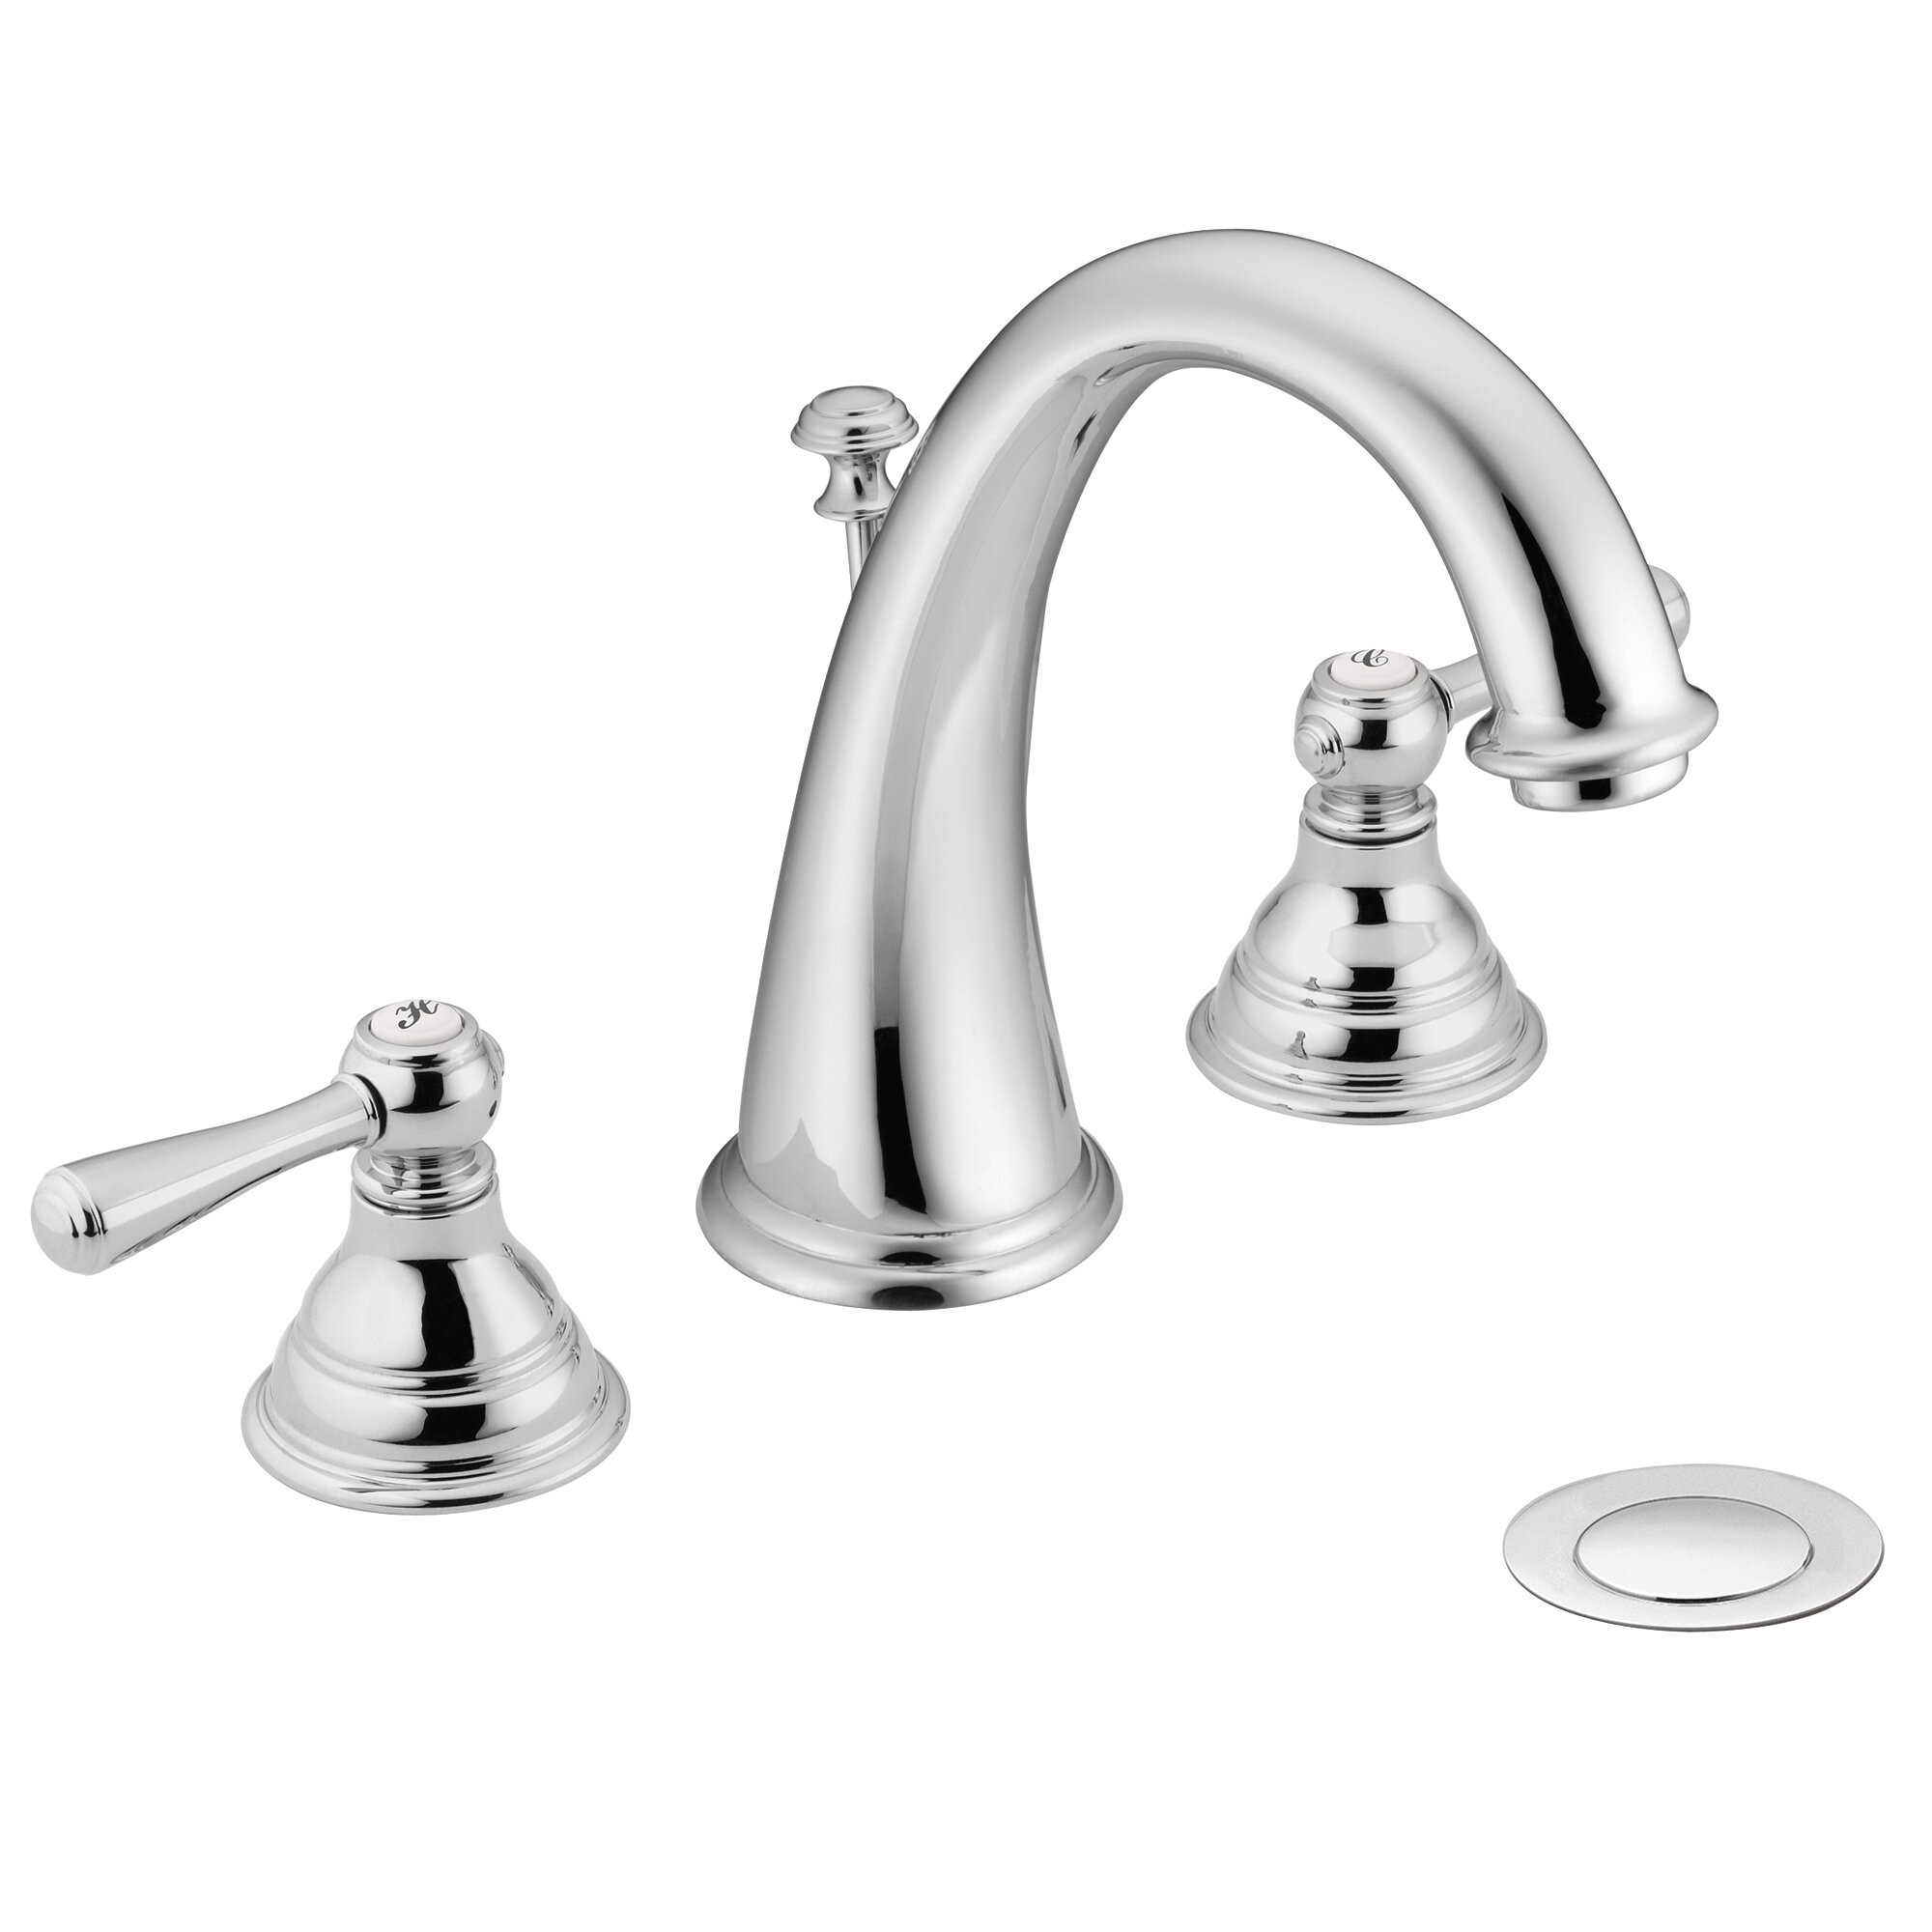 T6125bn Wr Moen Kingsley Widespread Bathroom Faucet With Drain Assembly Reviews Wayfair